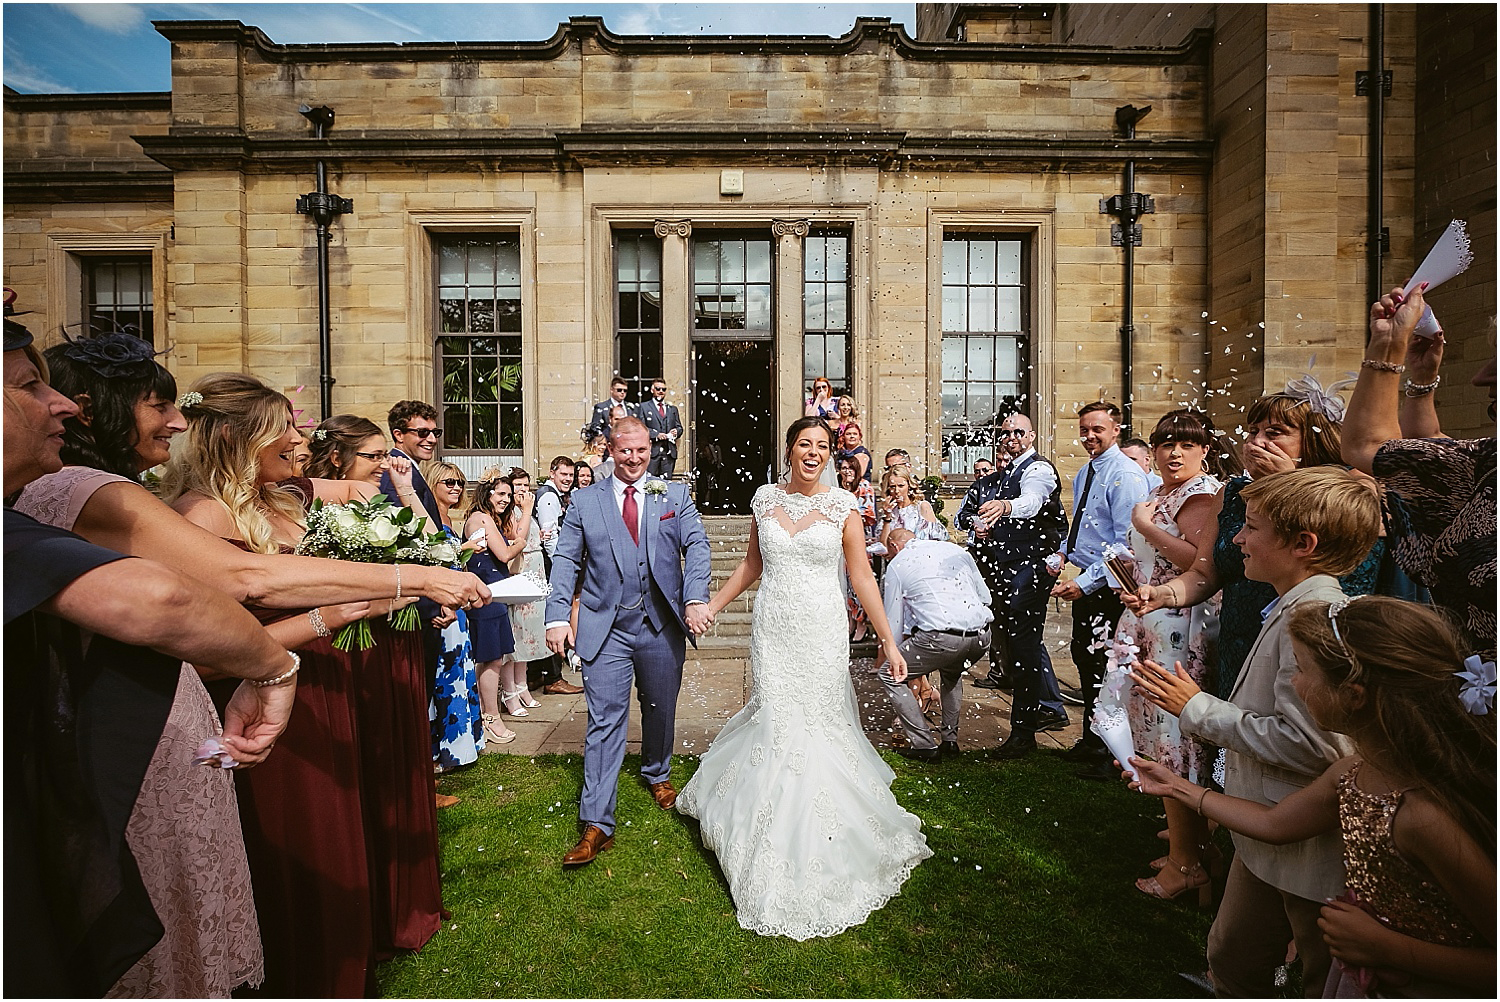 Wedding at Beamish Hall - wedding photography by www.2tonephotography.co.uk 162.jpg